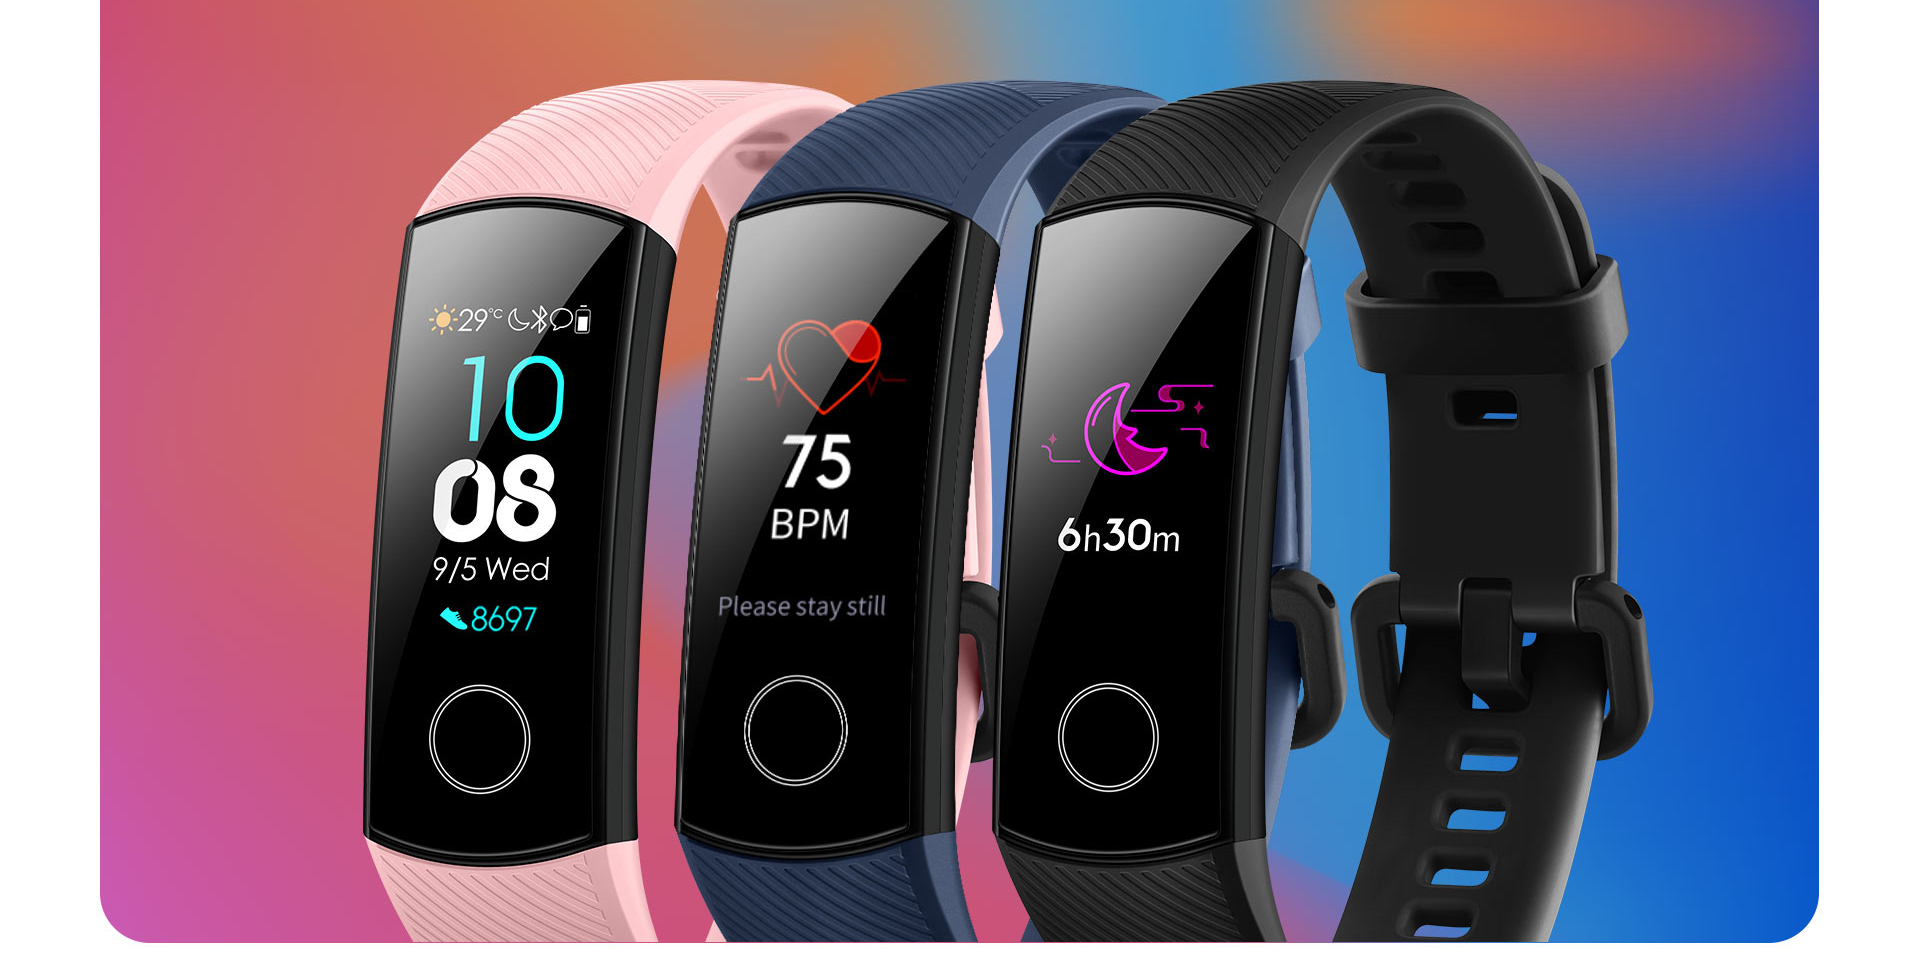 H856af71dc6384ceaa9f410c690a1bc722 global version Honor band 5 smart band AMOLED heart rate fitness sleep swimming sport blood oxygen tracker